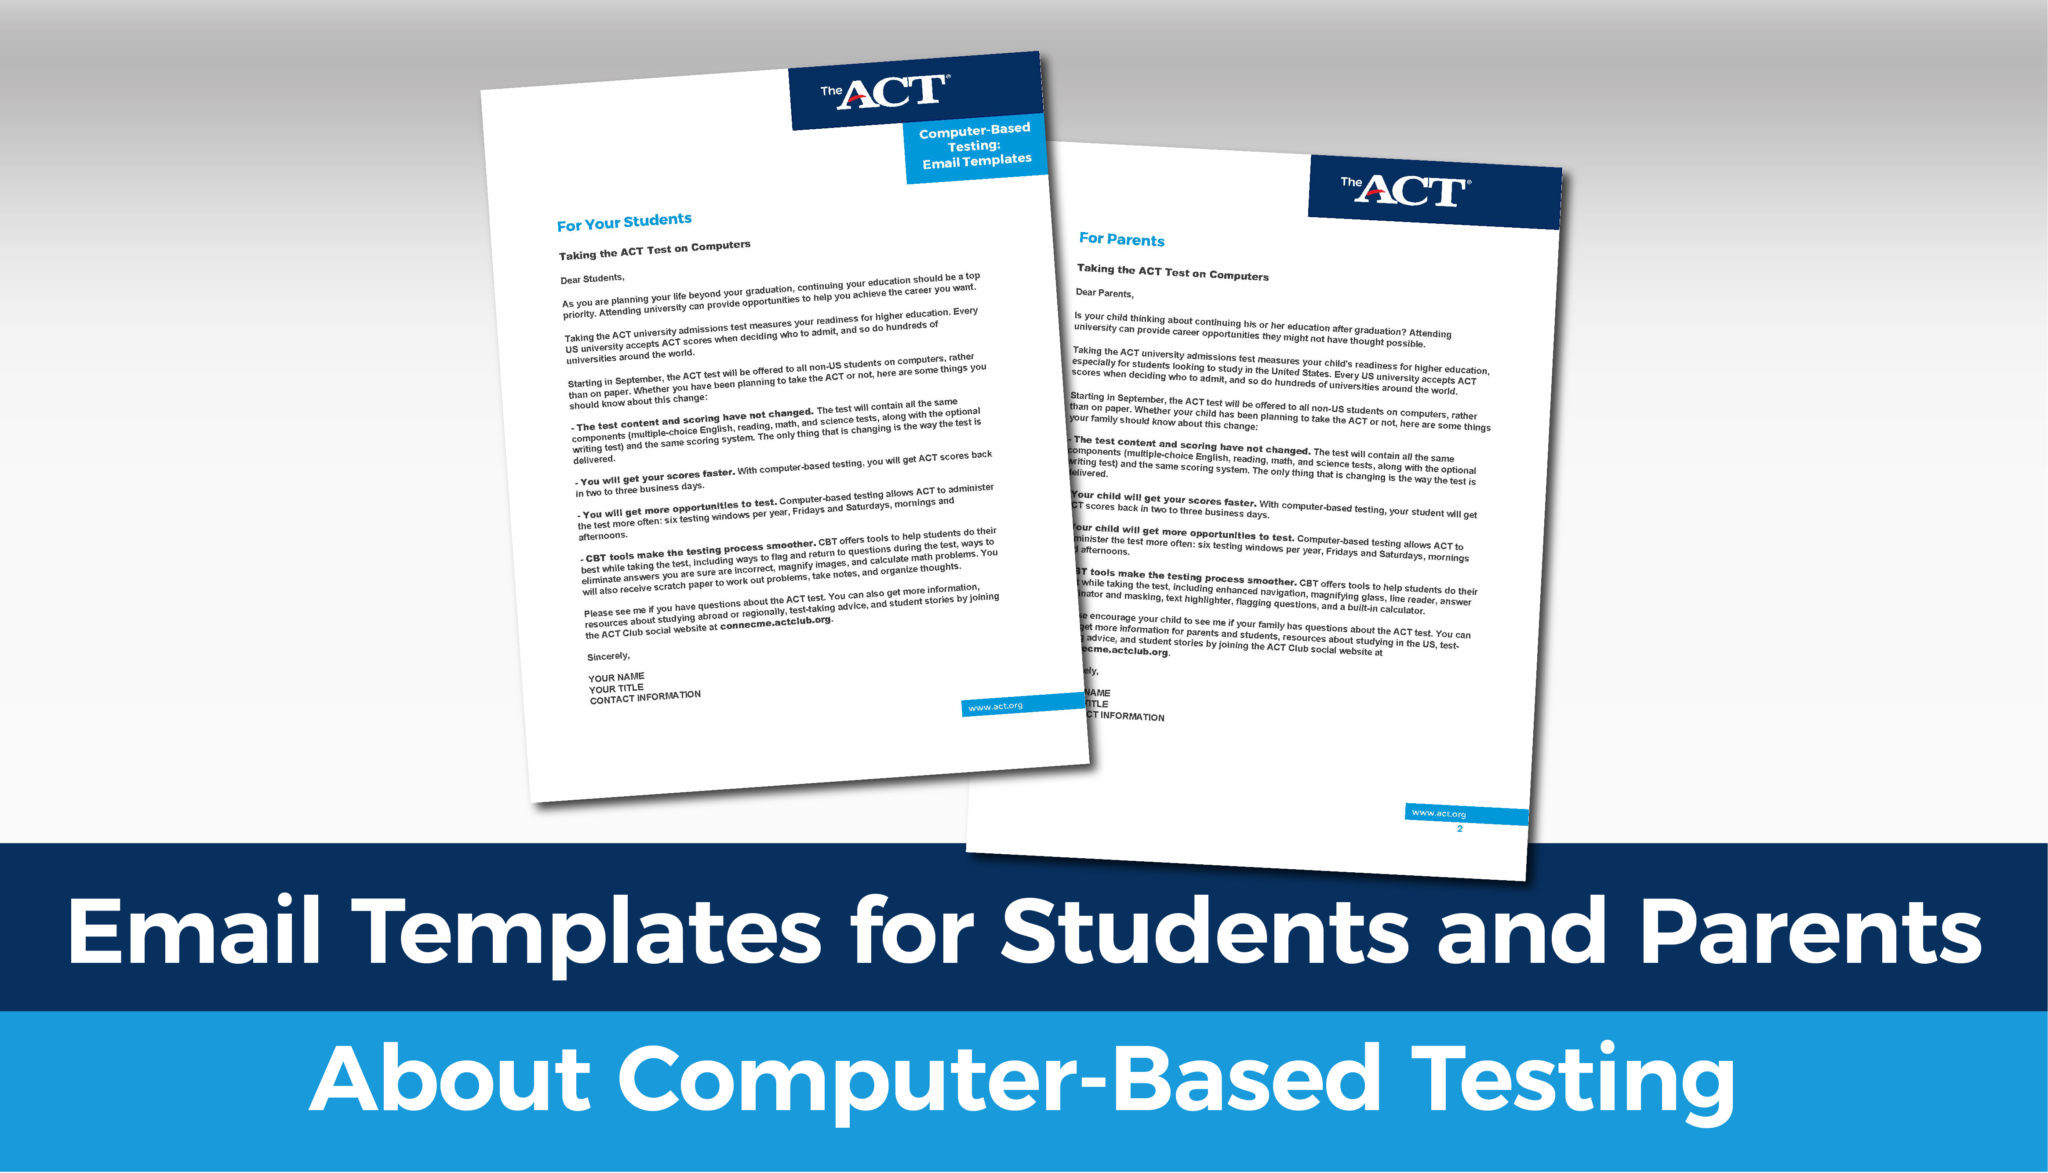 Email Templates for Students and Parents